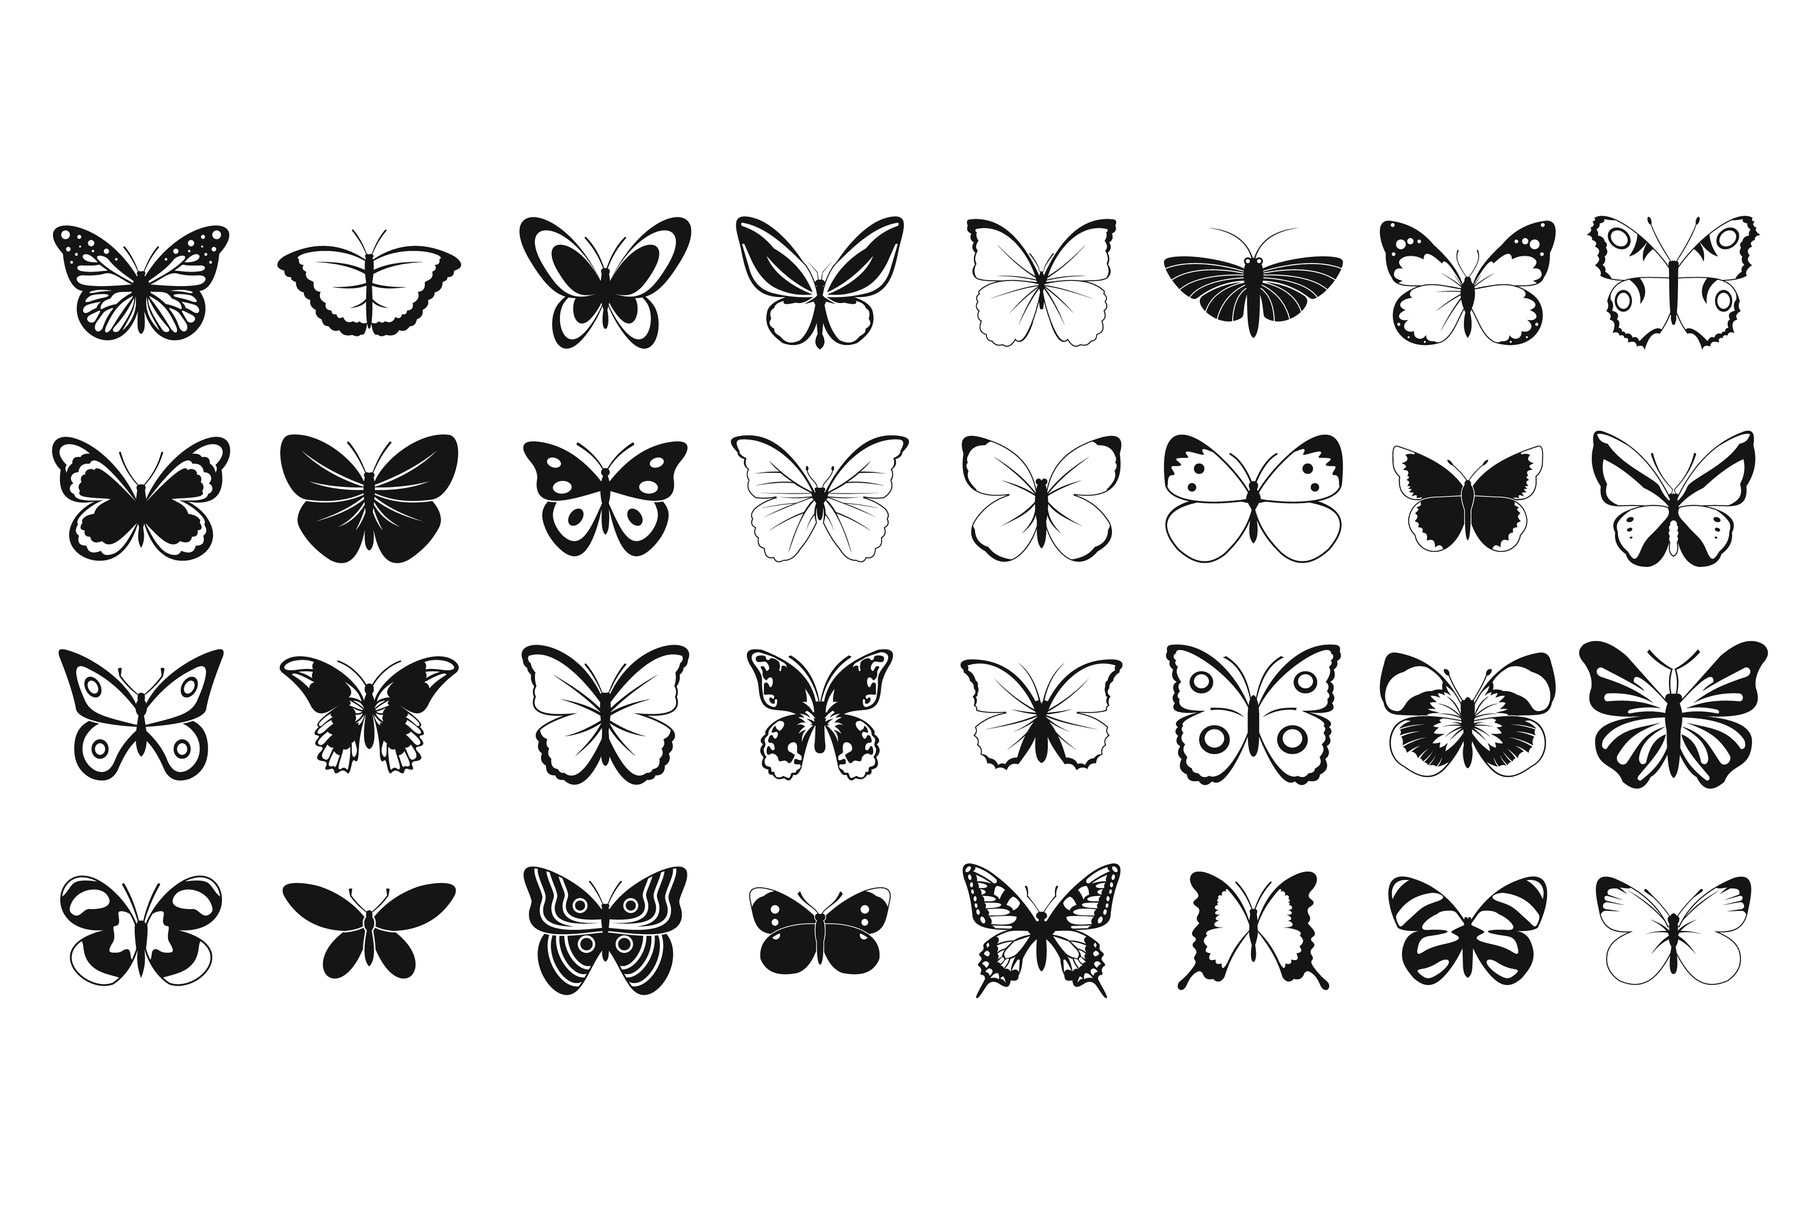 Butterfly icon set, simple style example image 1